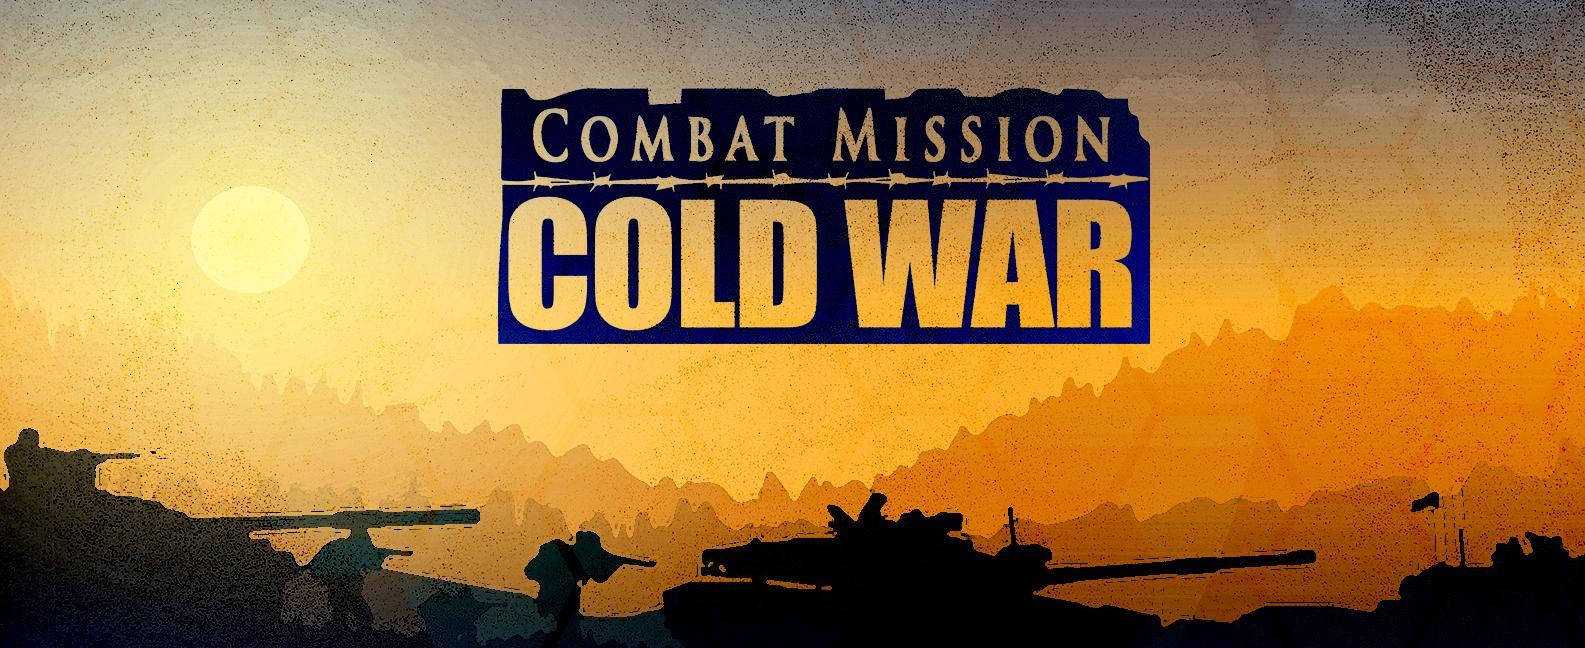 Combat Mission Cold War